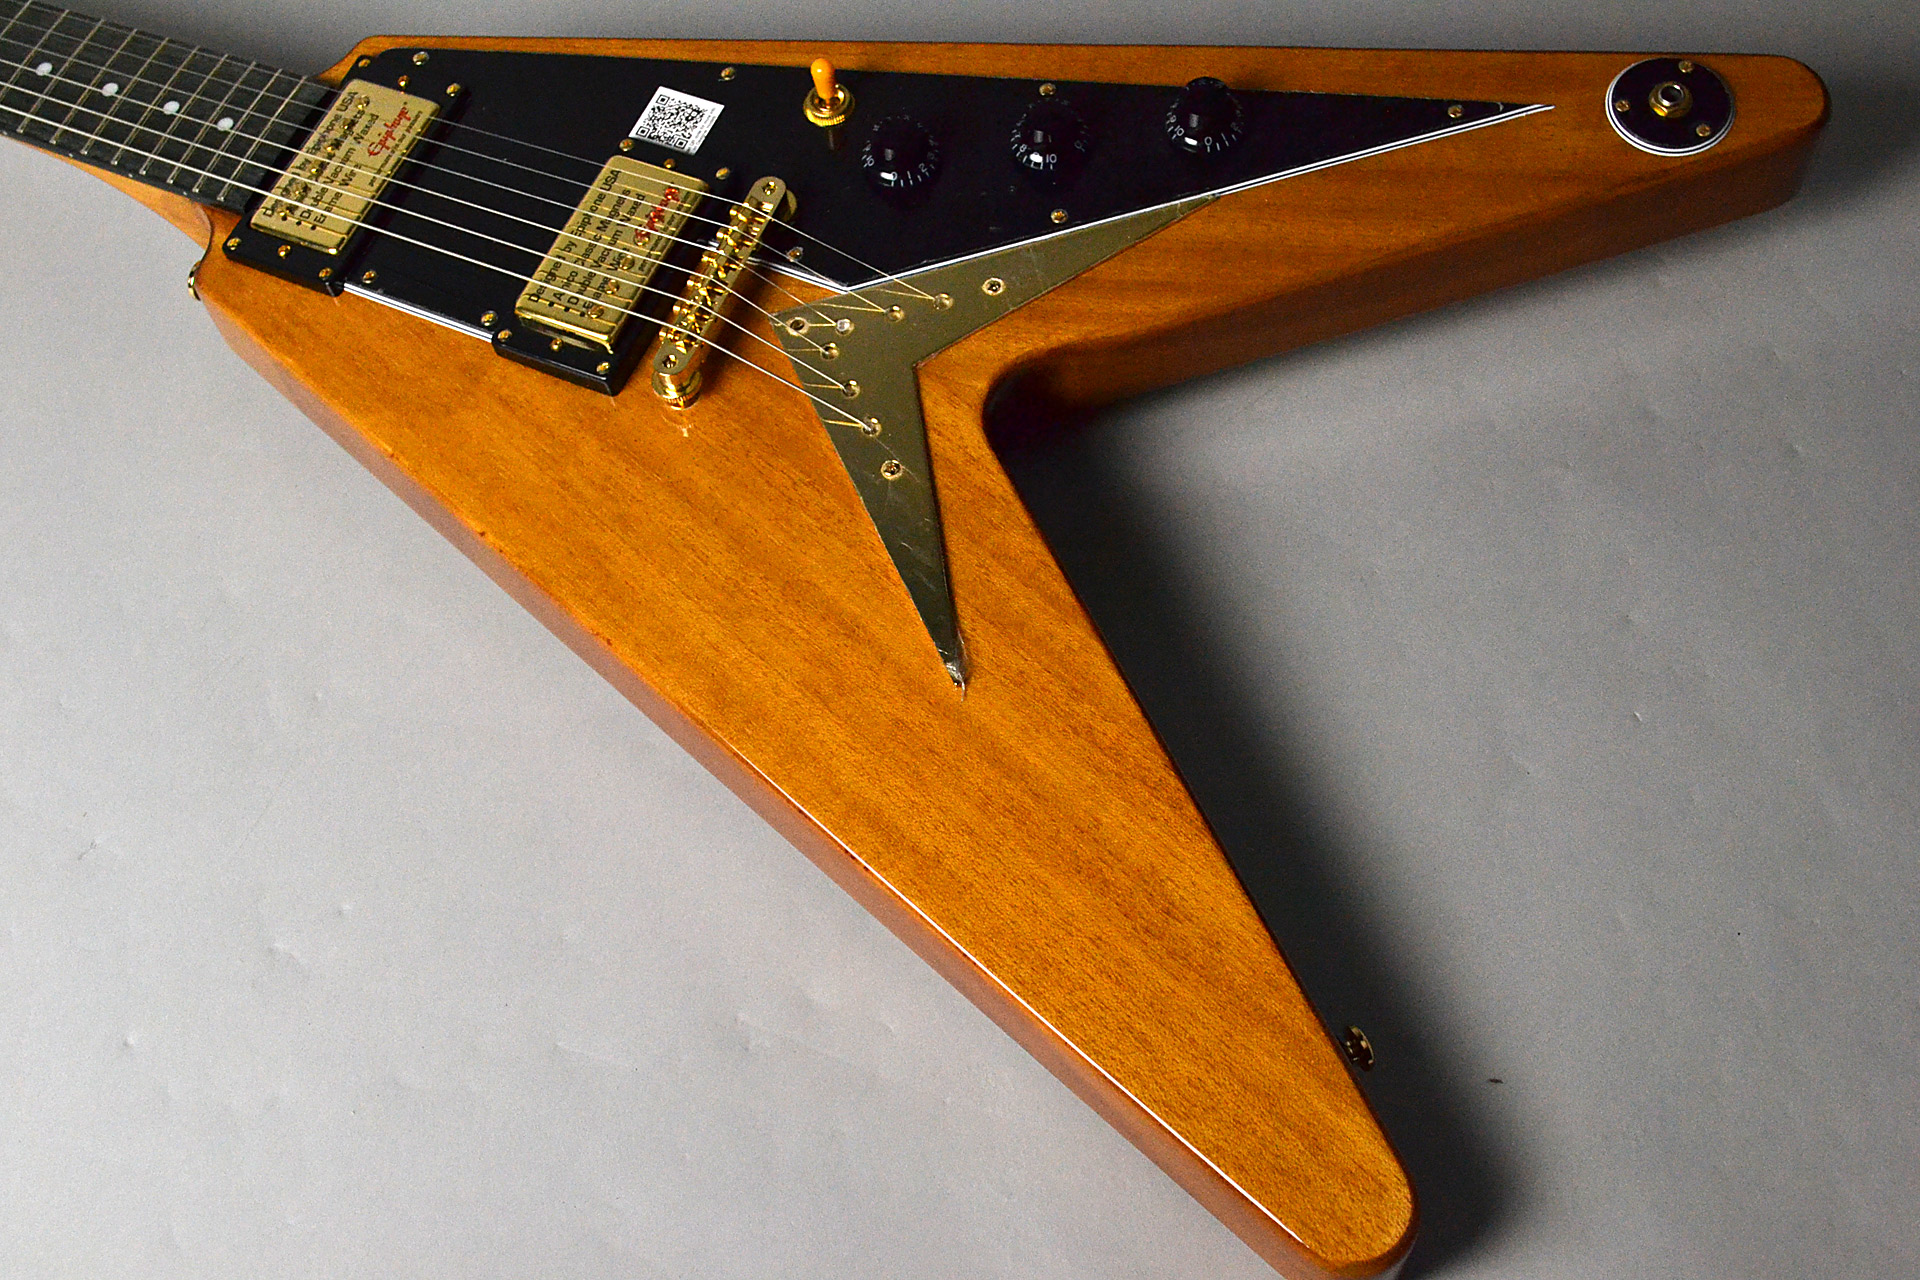 LTD Ed. Korina Flying-V EGV2ANGH3の全体画像(縦)